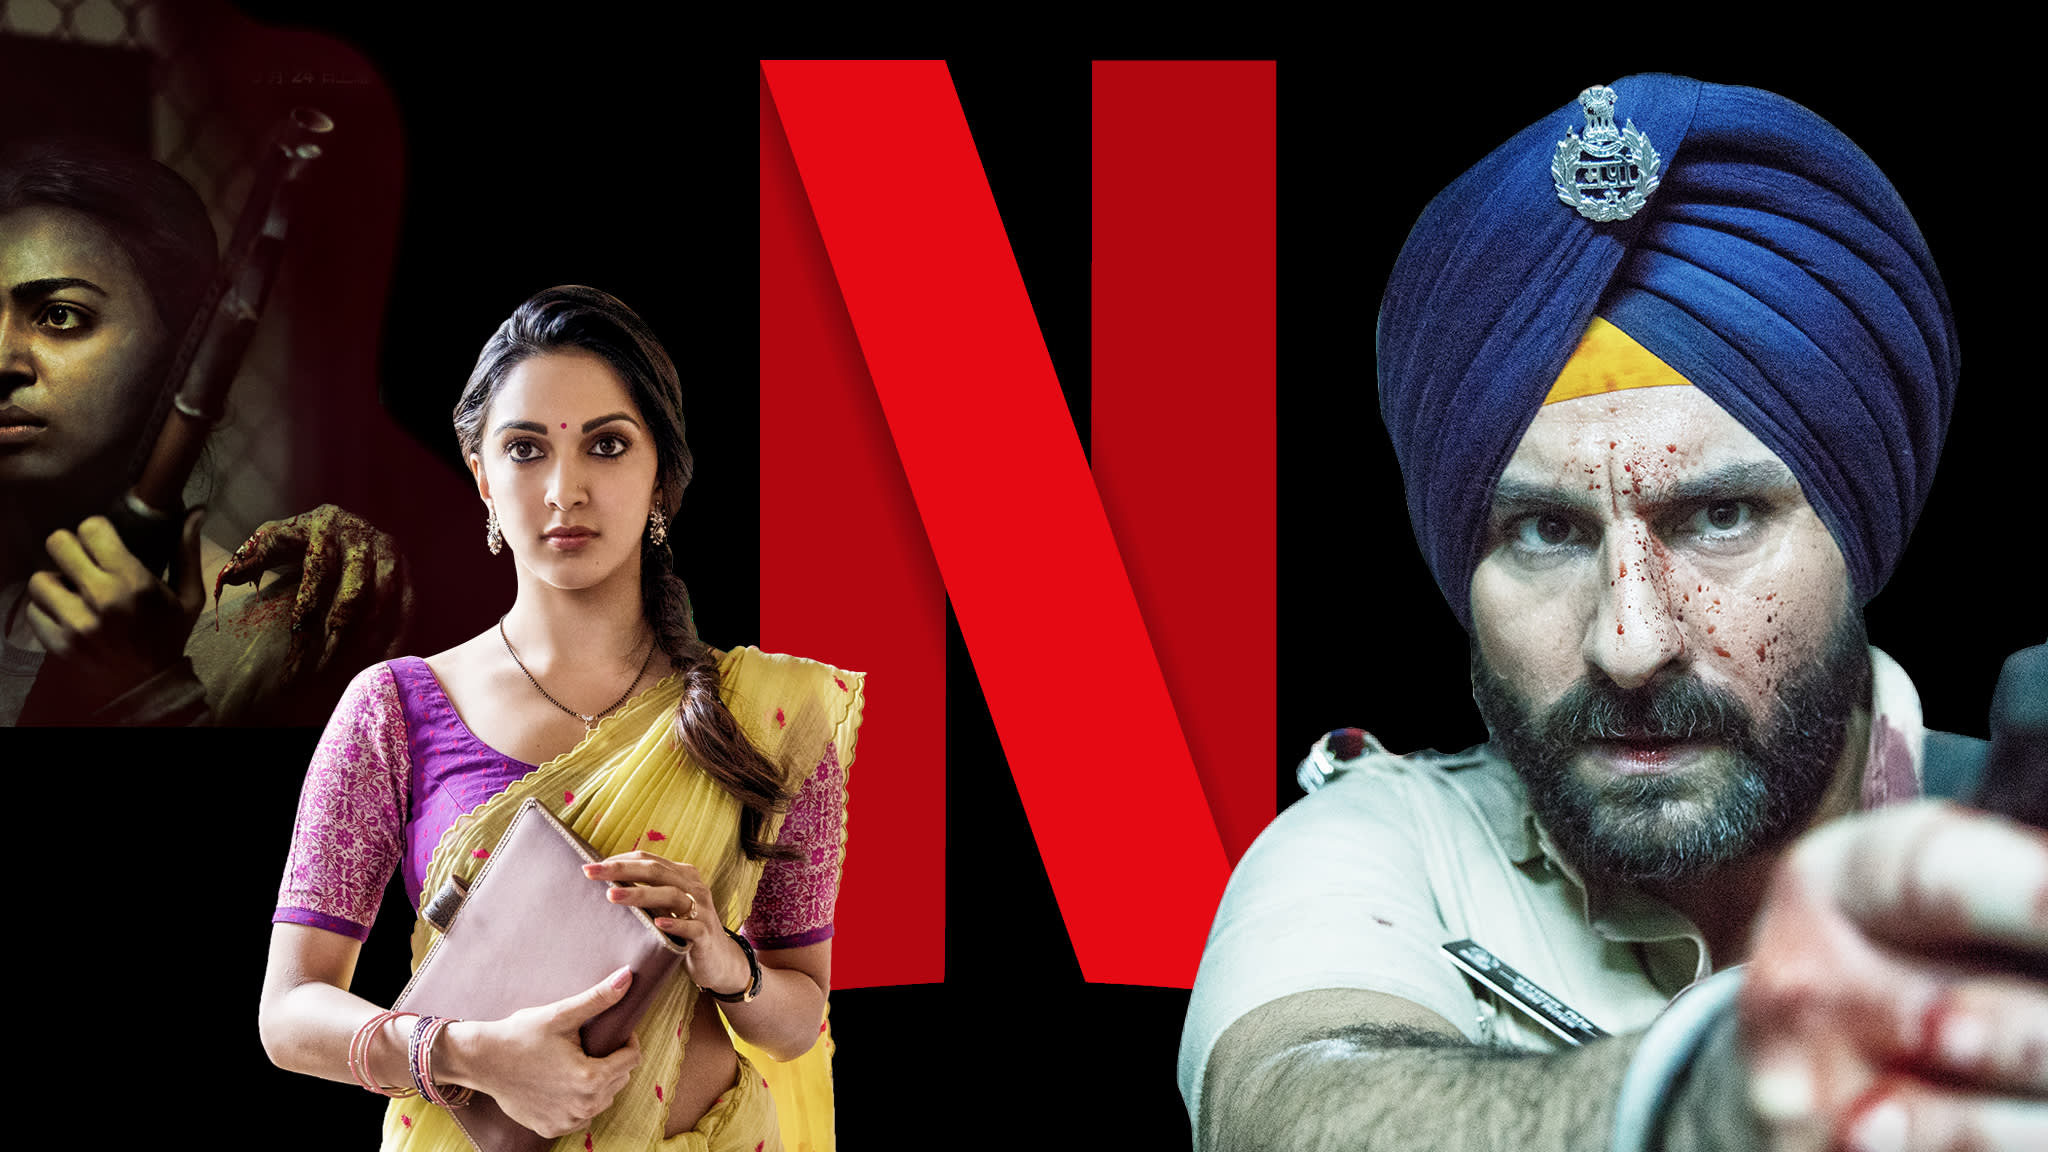 India: Netflix takes a gamble on its next 100m subscribers